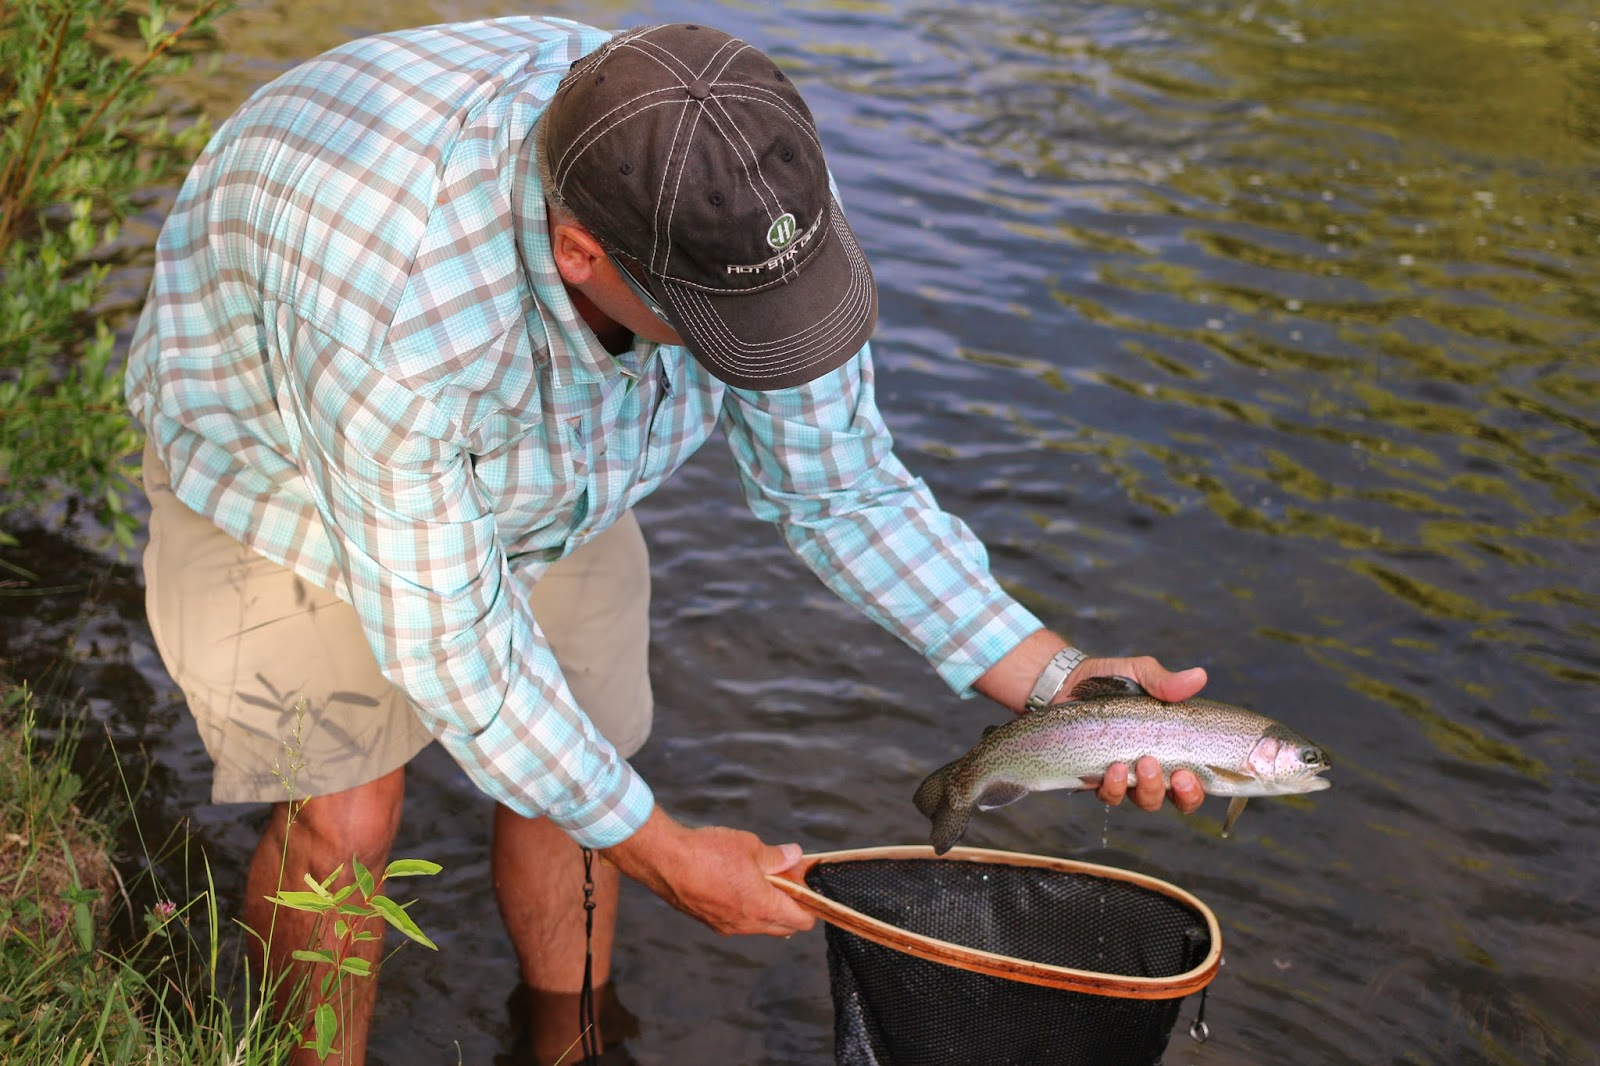 Roaring+fork+river+fly+fishing+with+Jay+Scott+Outdoors+2.JPG